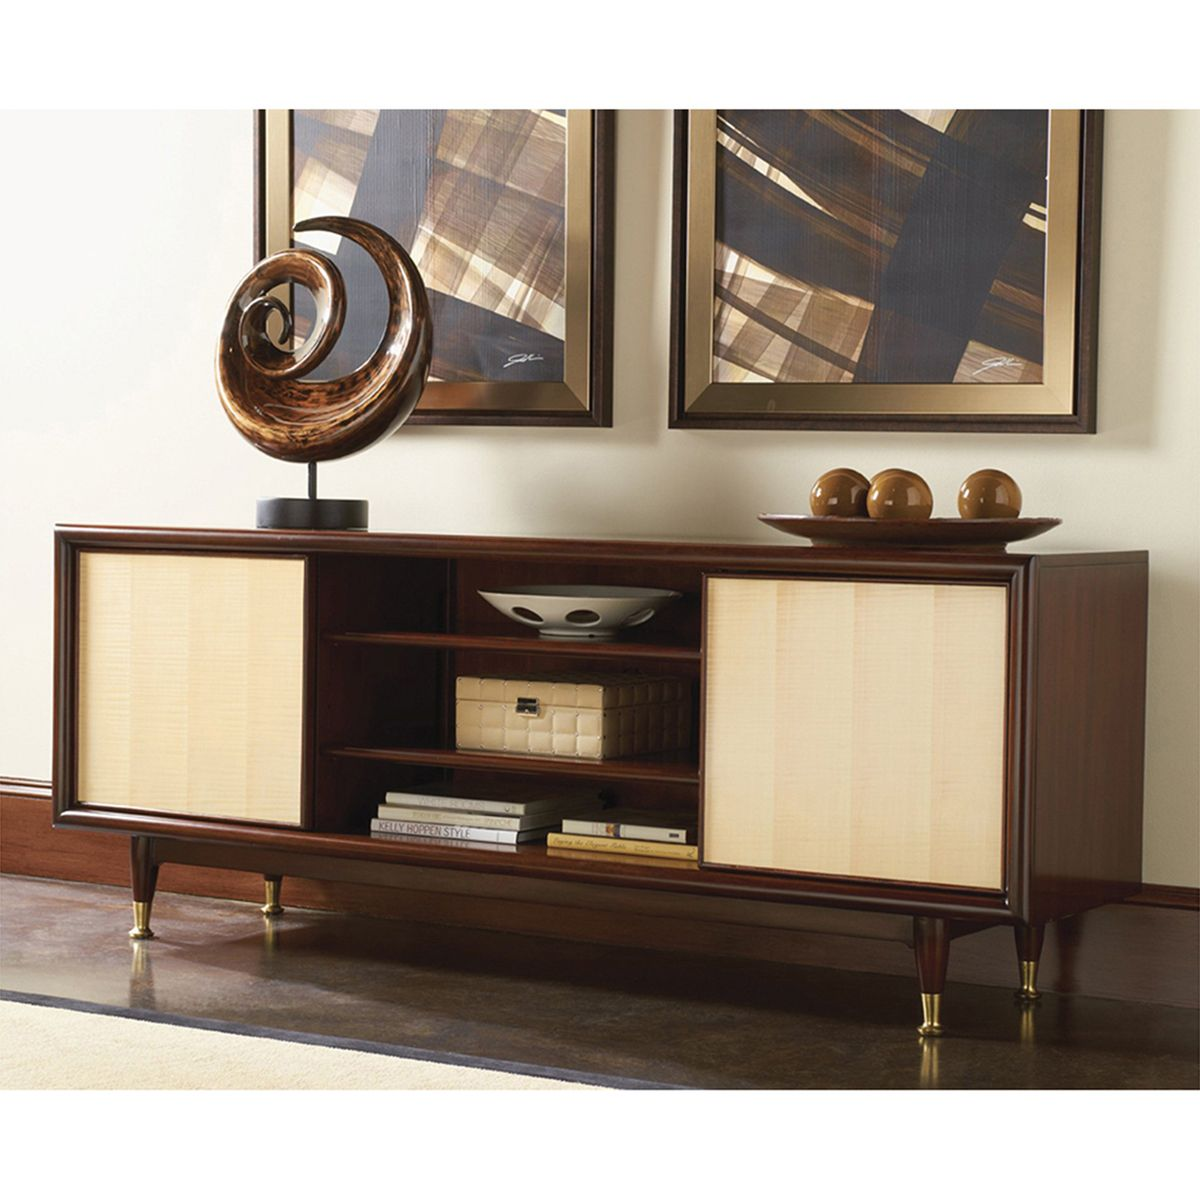 Lexington studio designs caprice media console ml sligh